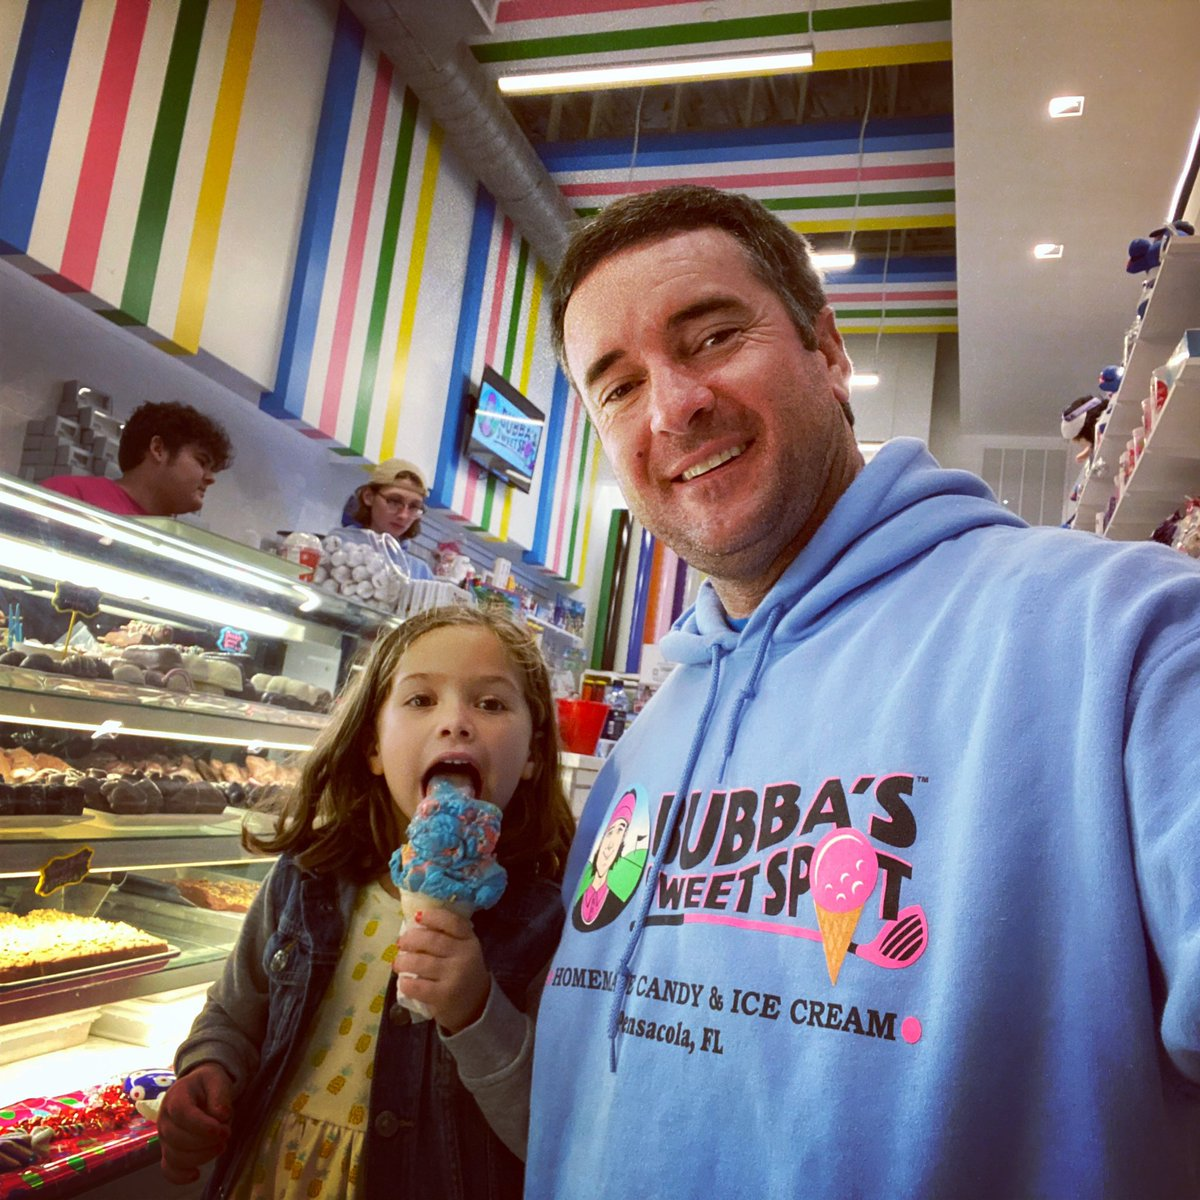 Date night with Dakota & we always stop by @BubbaSweetSpot!! #PensacolaLife #SupermanIceCream